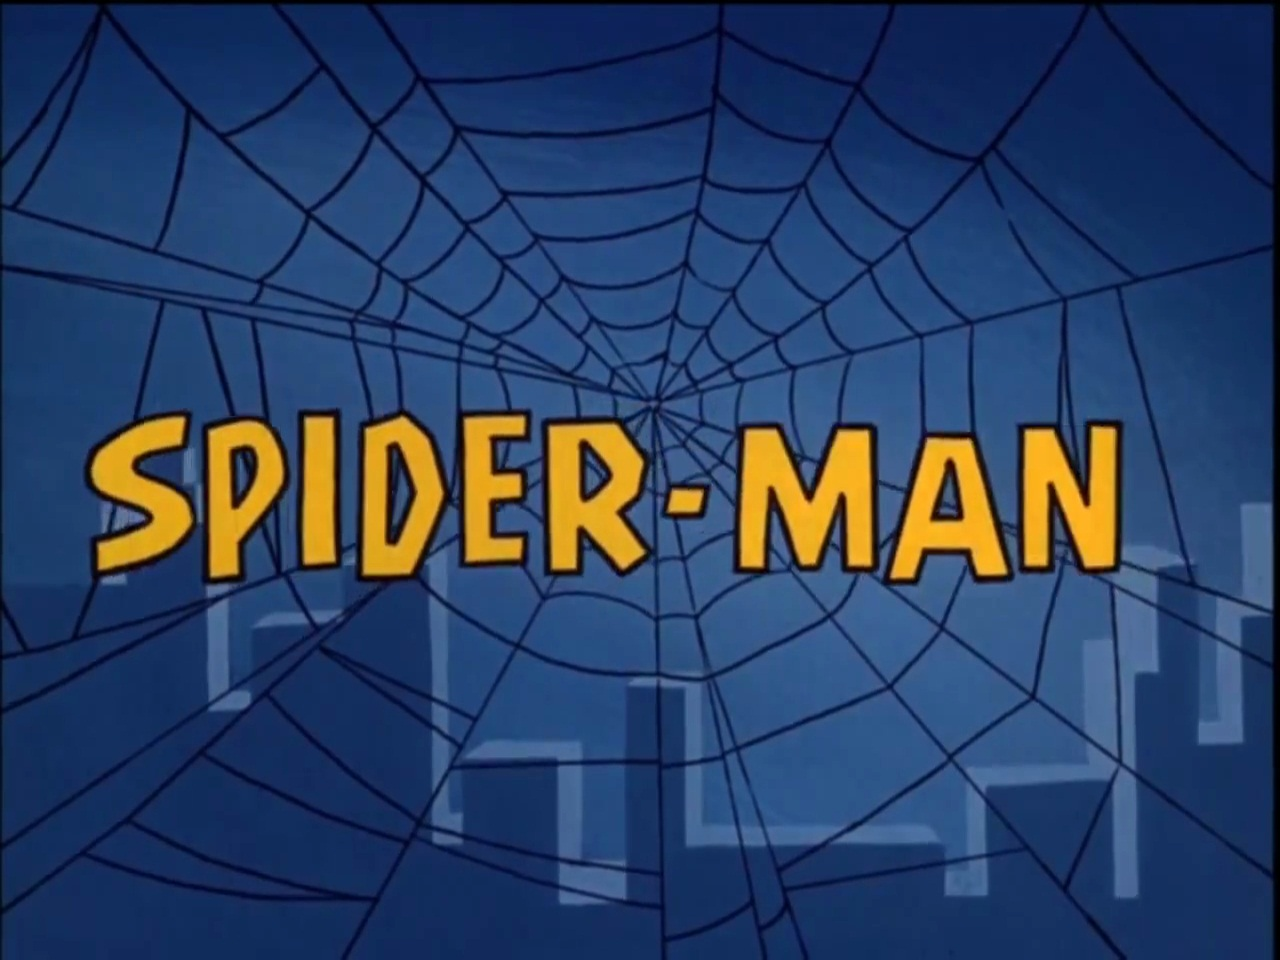 Spider-Man (1967 TV series) | Spider-Man Wiki | FANDOM